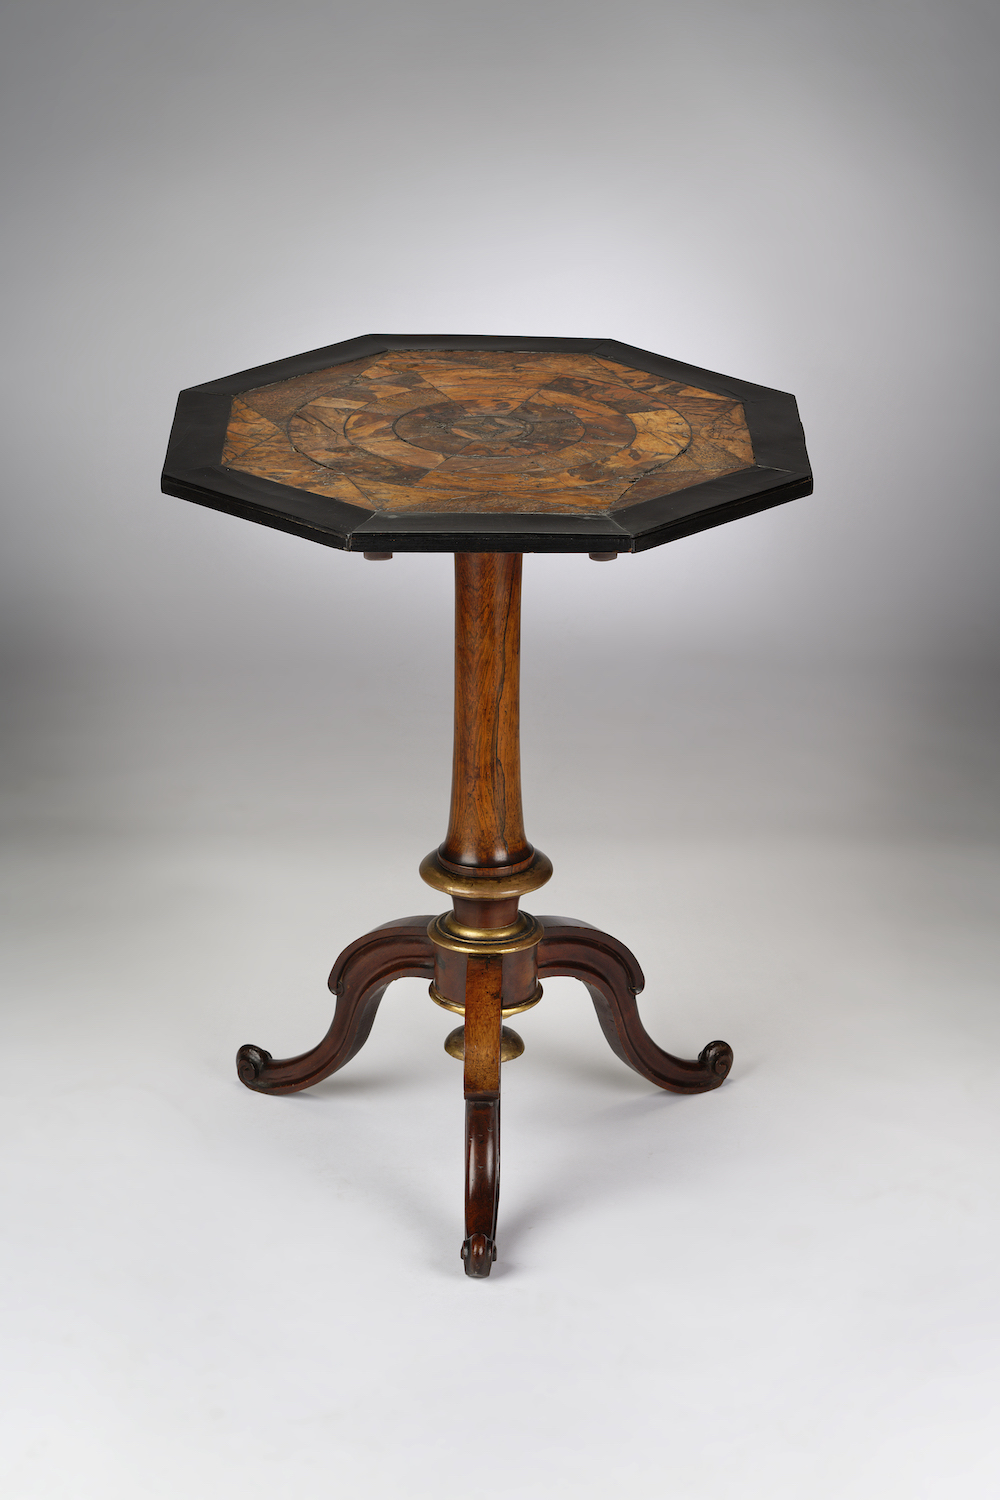 Image of A Small Jamaican Parcel-gilt Tripod Table